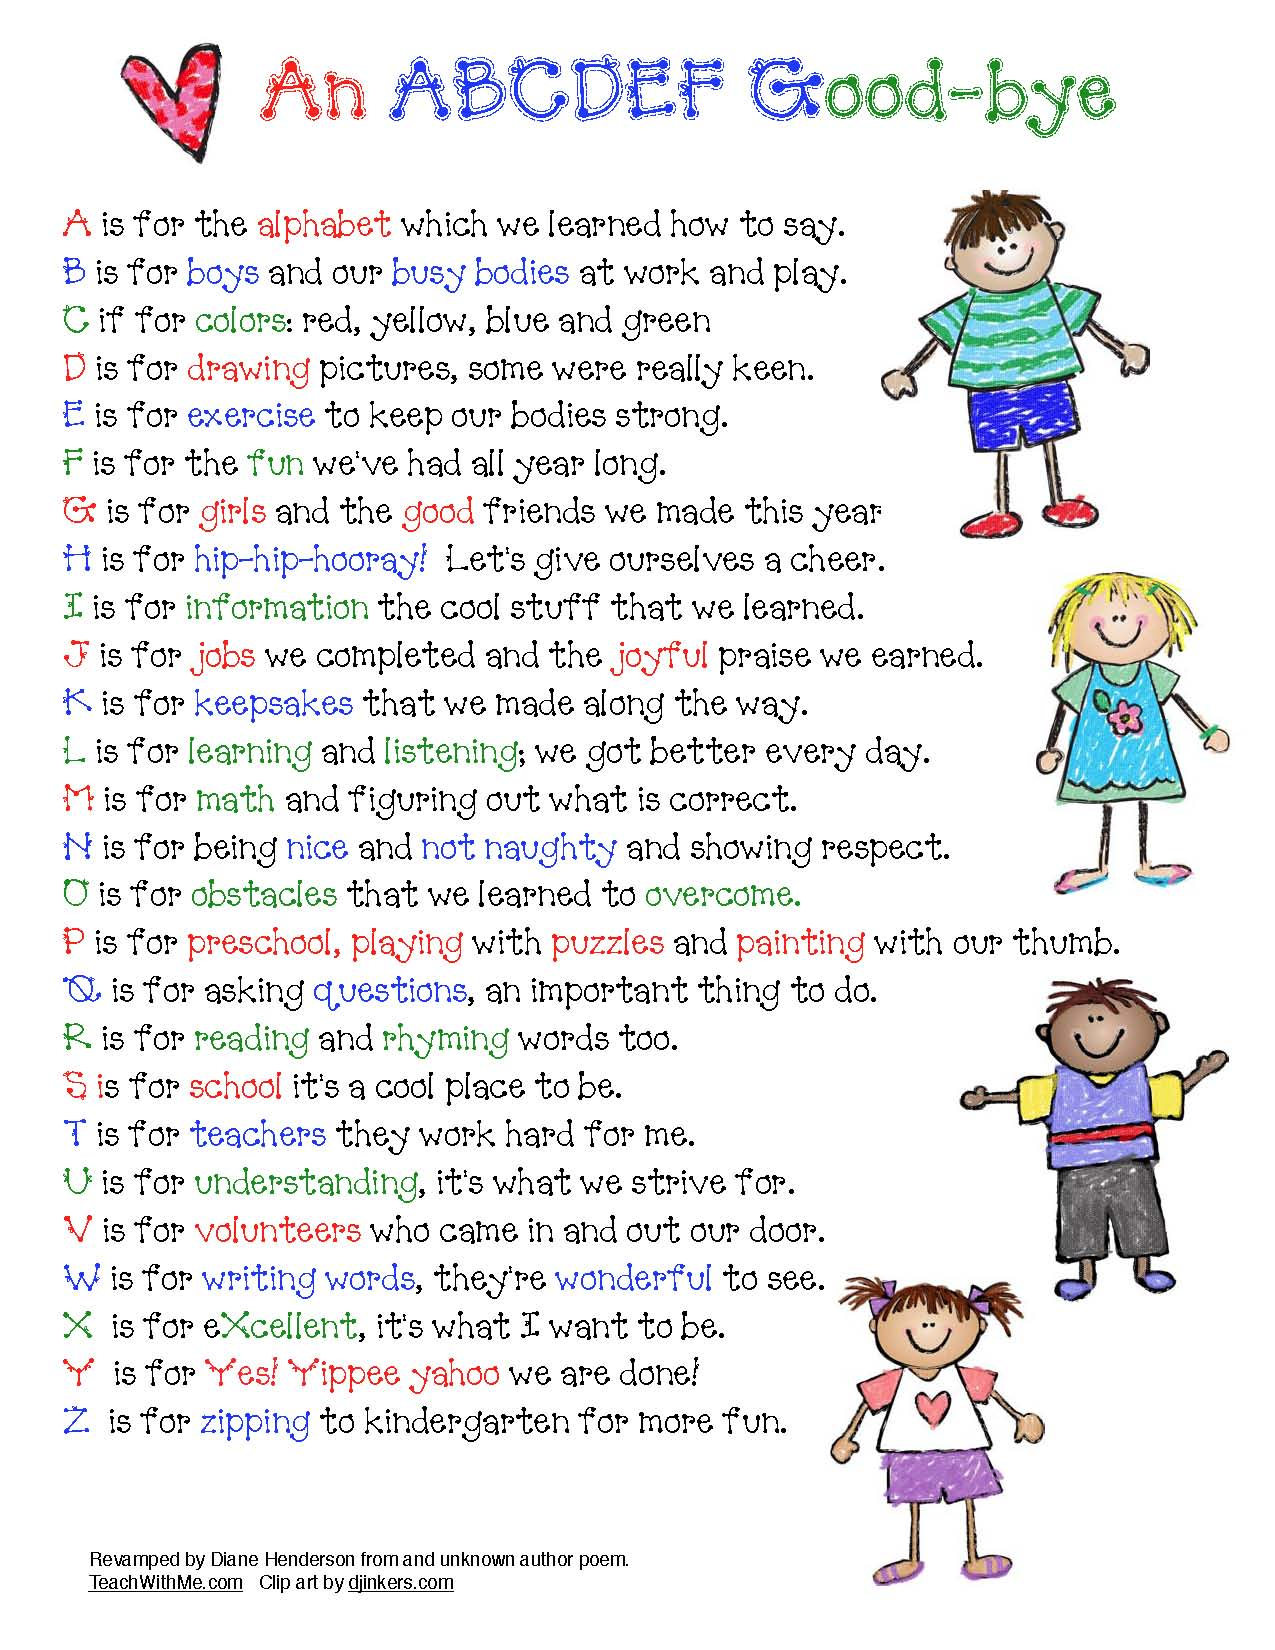 alphabet poem, alphabet activities, end of the year activities, good bye poem, end of the year poems, good bye alphabet poem, last day of school activities